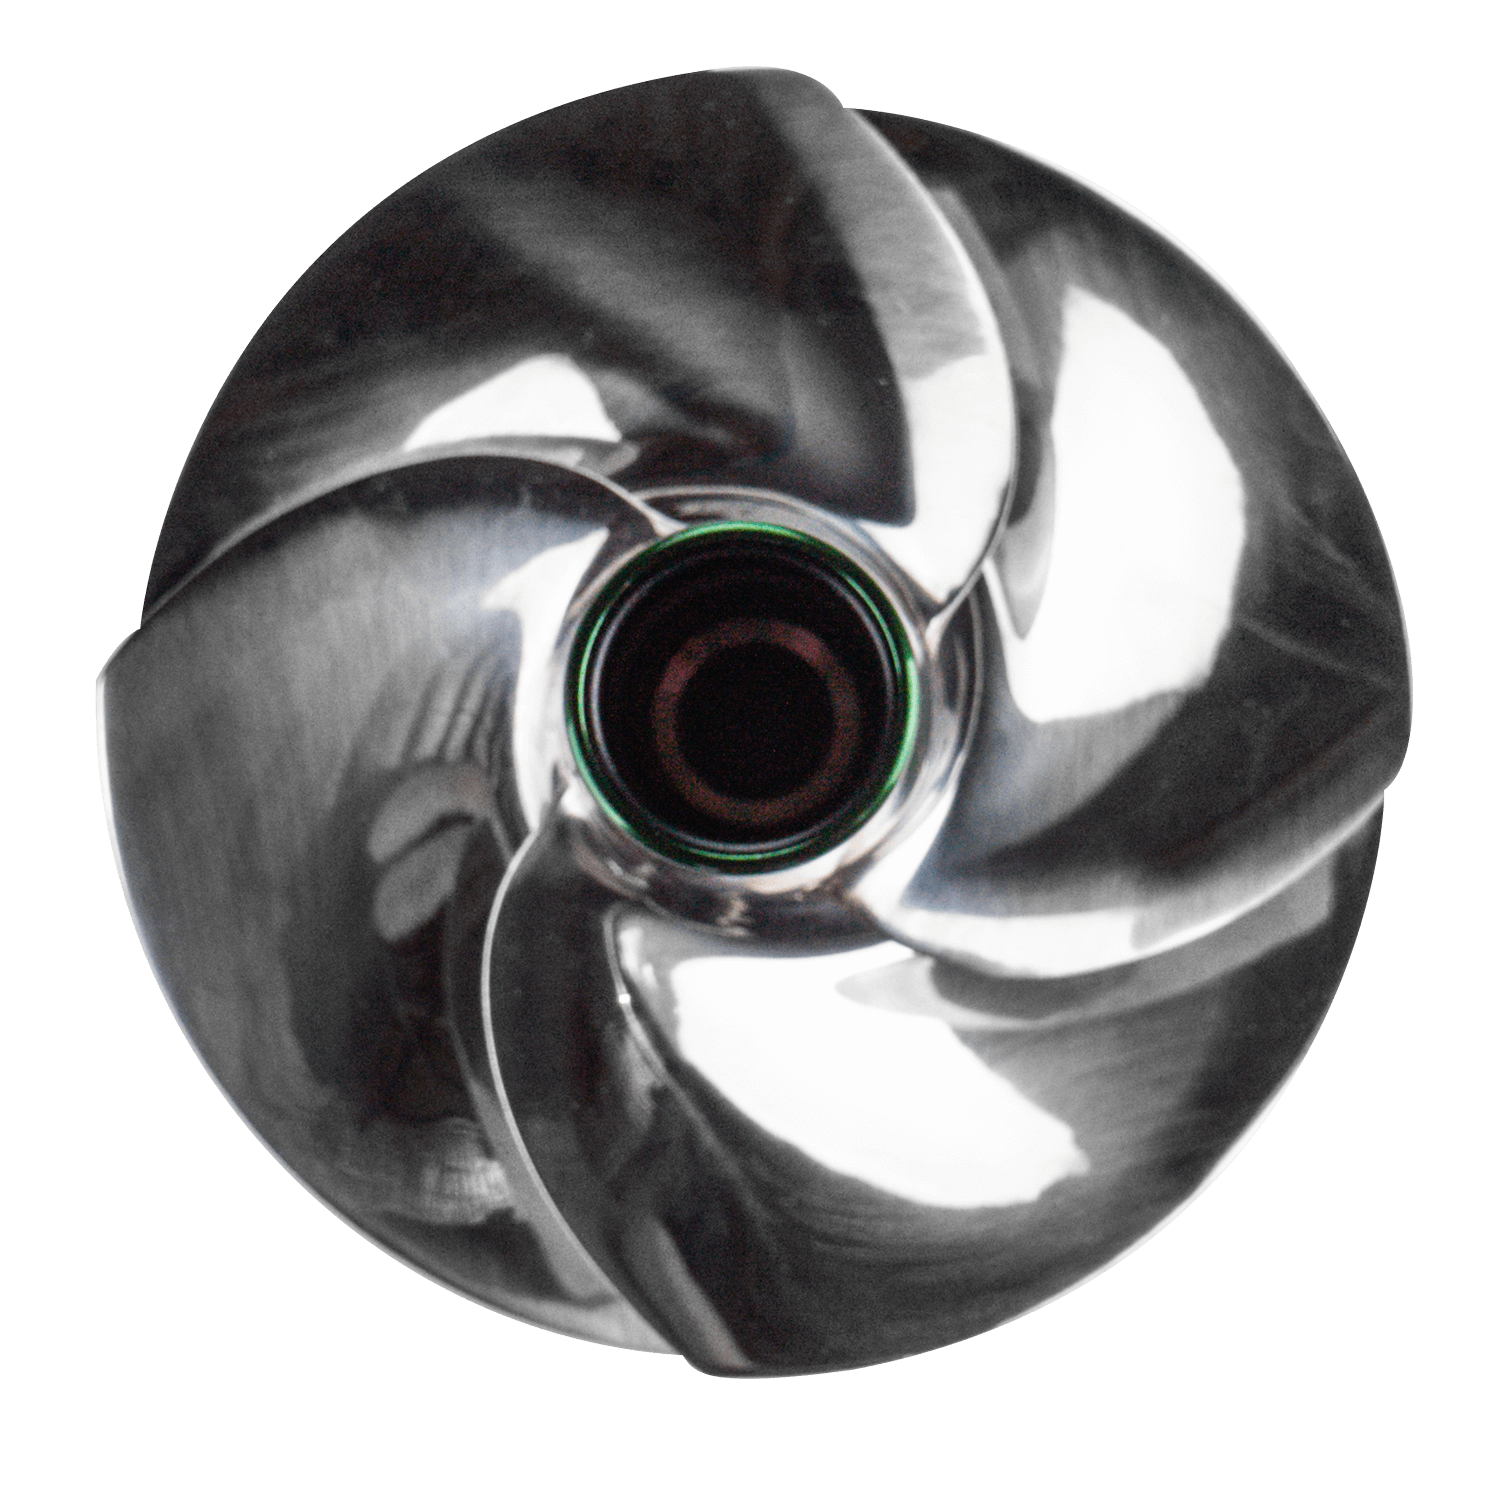 Solas 15/20A Seadoo Reflashed 09-10 RXP, RXT 215/09-15 GTX 215 Impeller